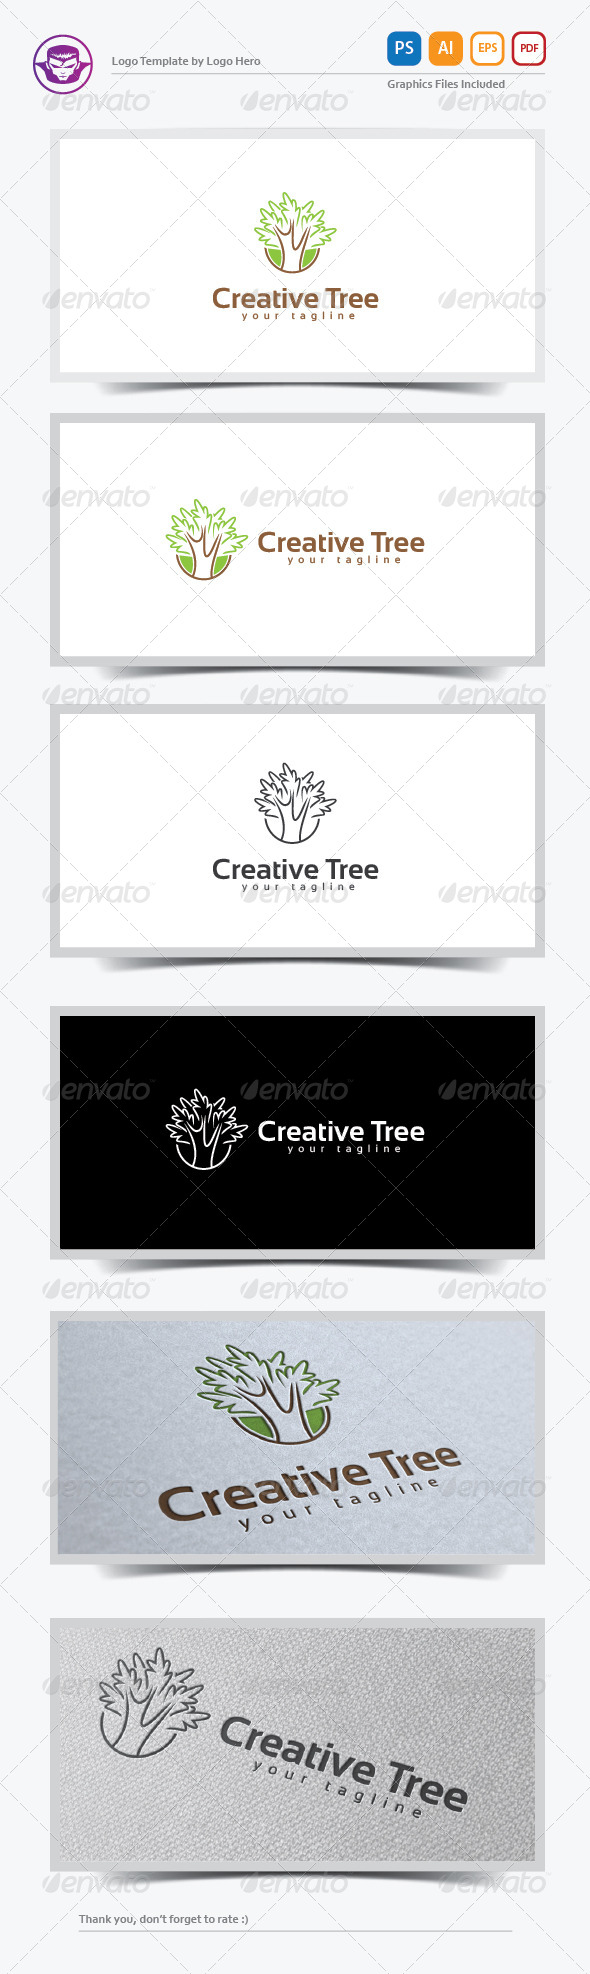 GraphicRiver Creative Tree Logo Template 8199896